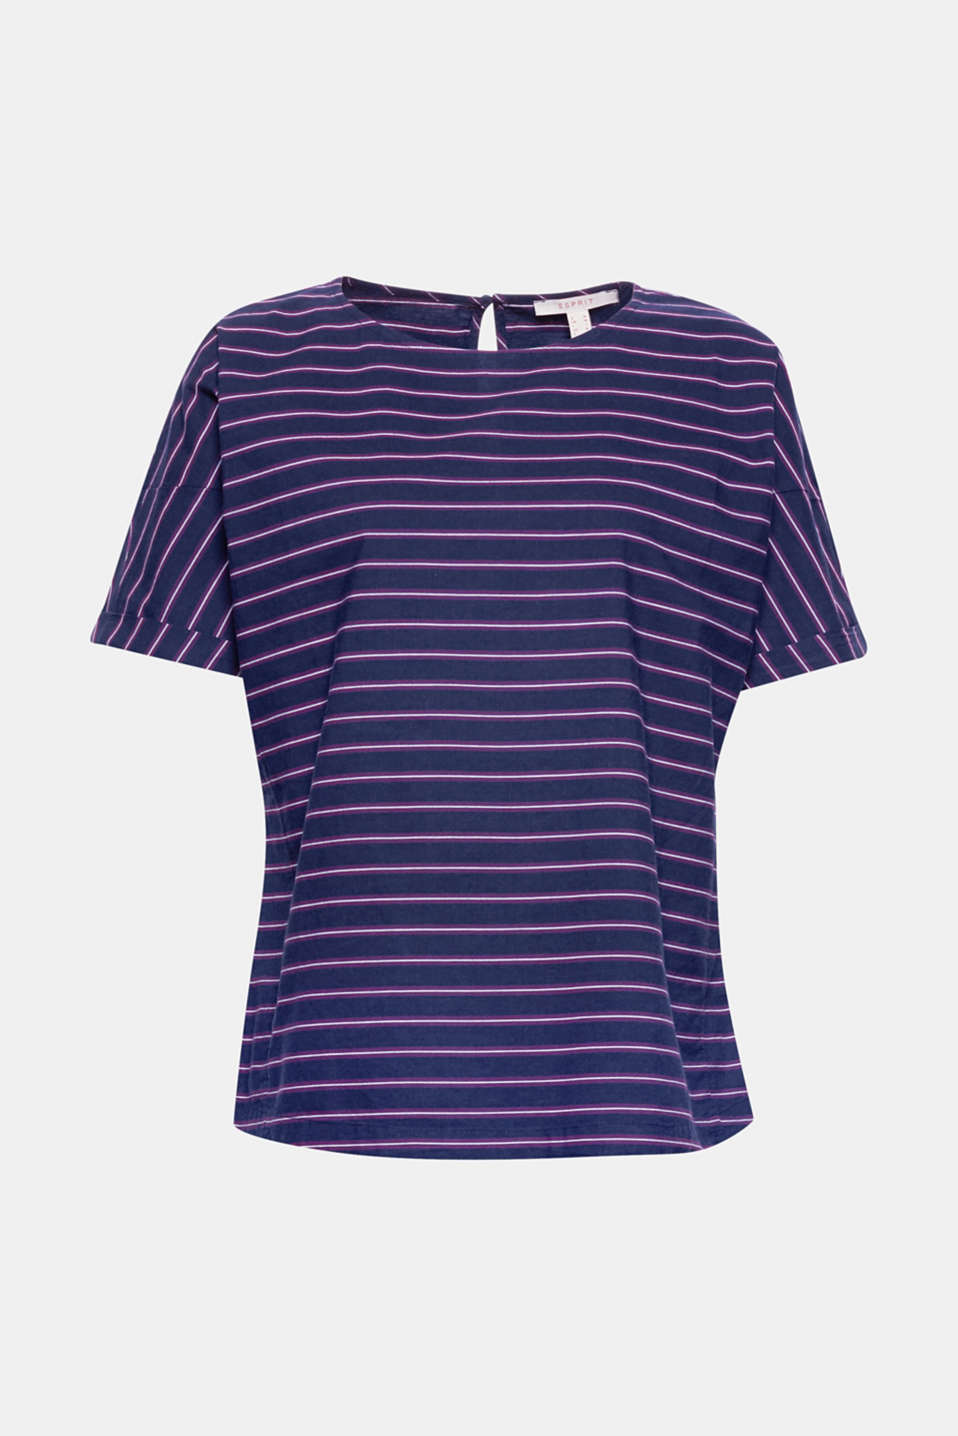 We can't get enough of stripes this summer: stylish cotton blouse with mock batwing sleeves!